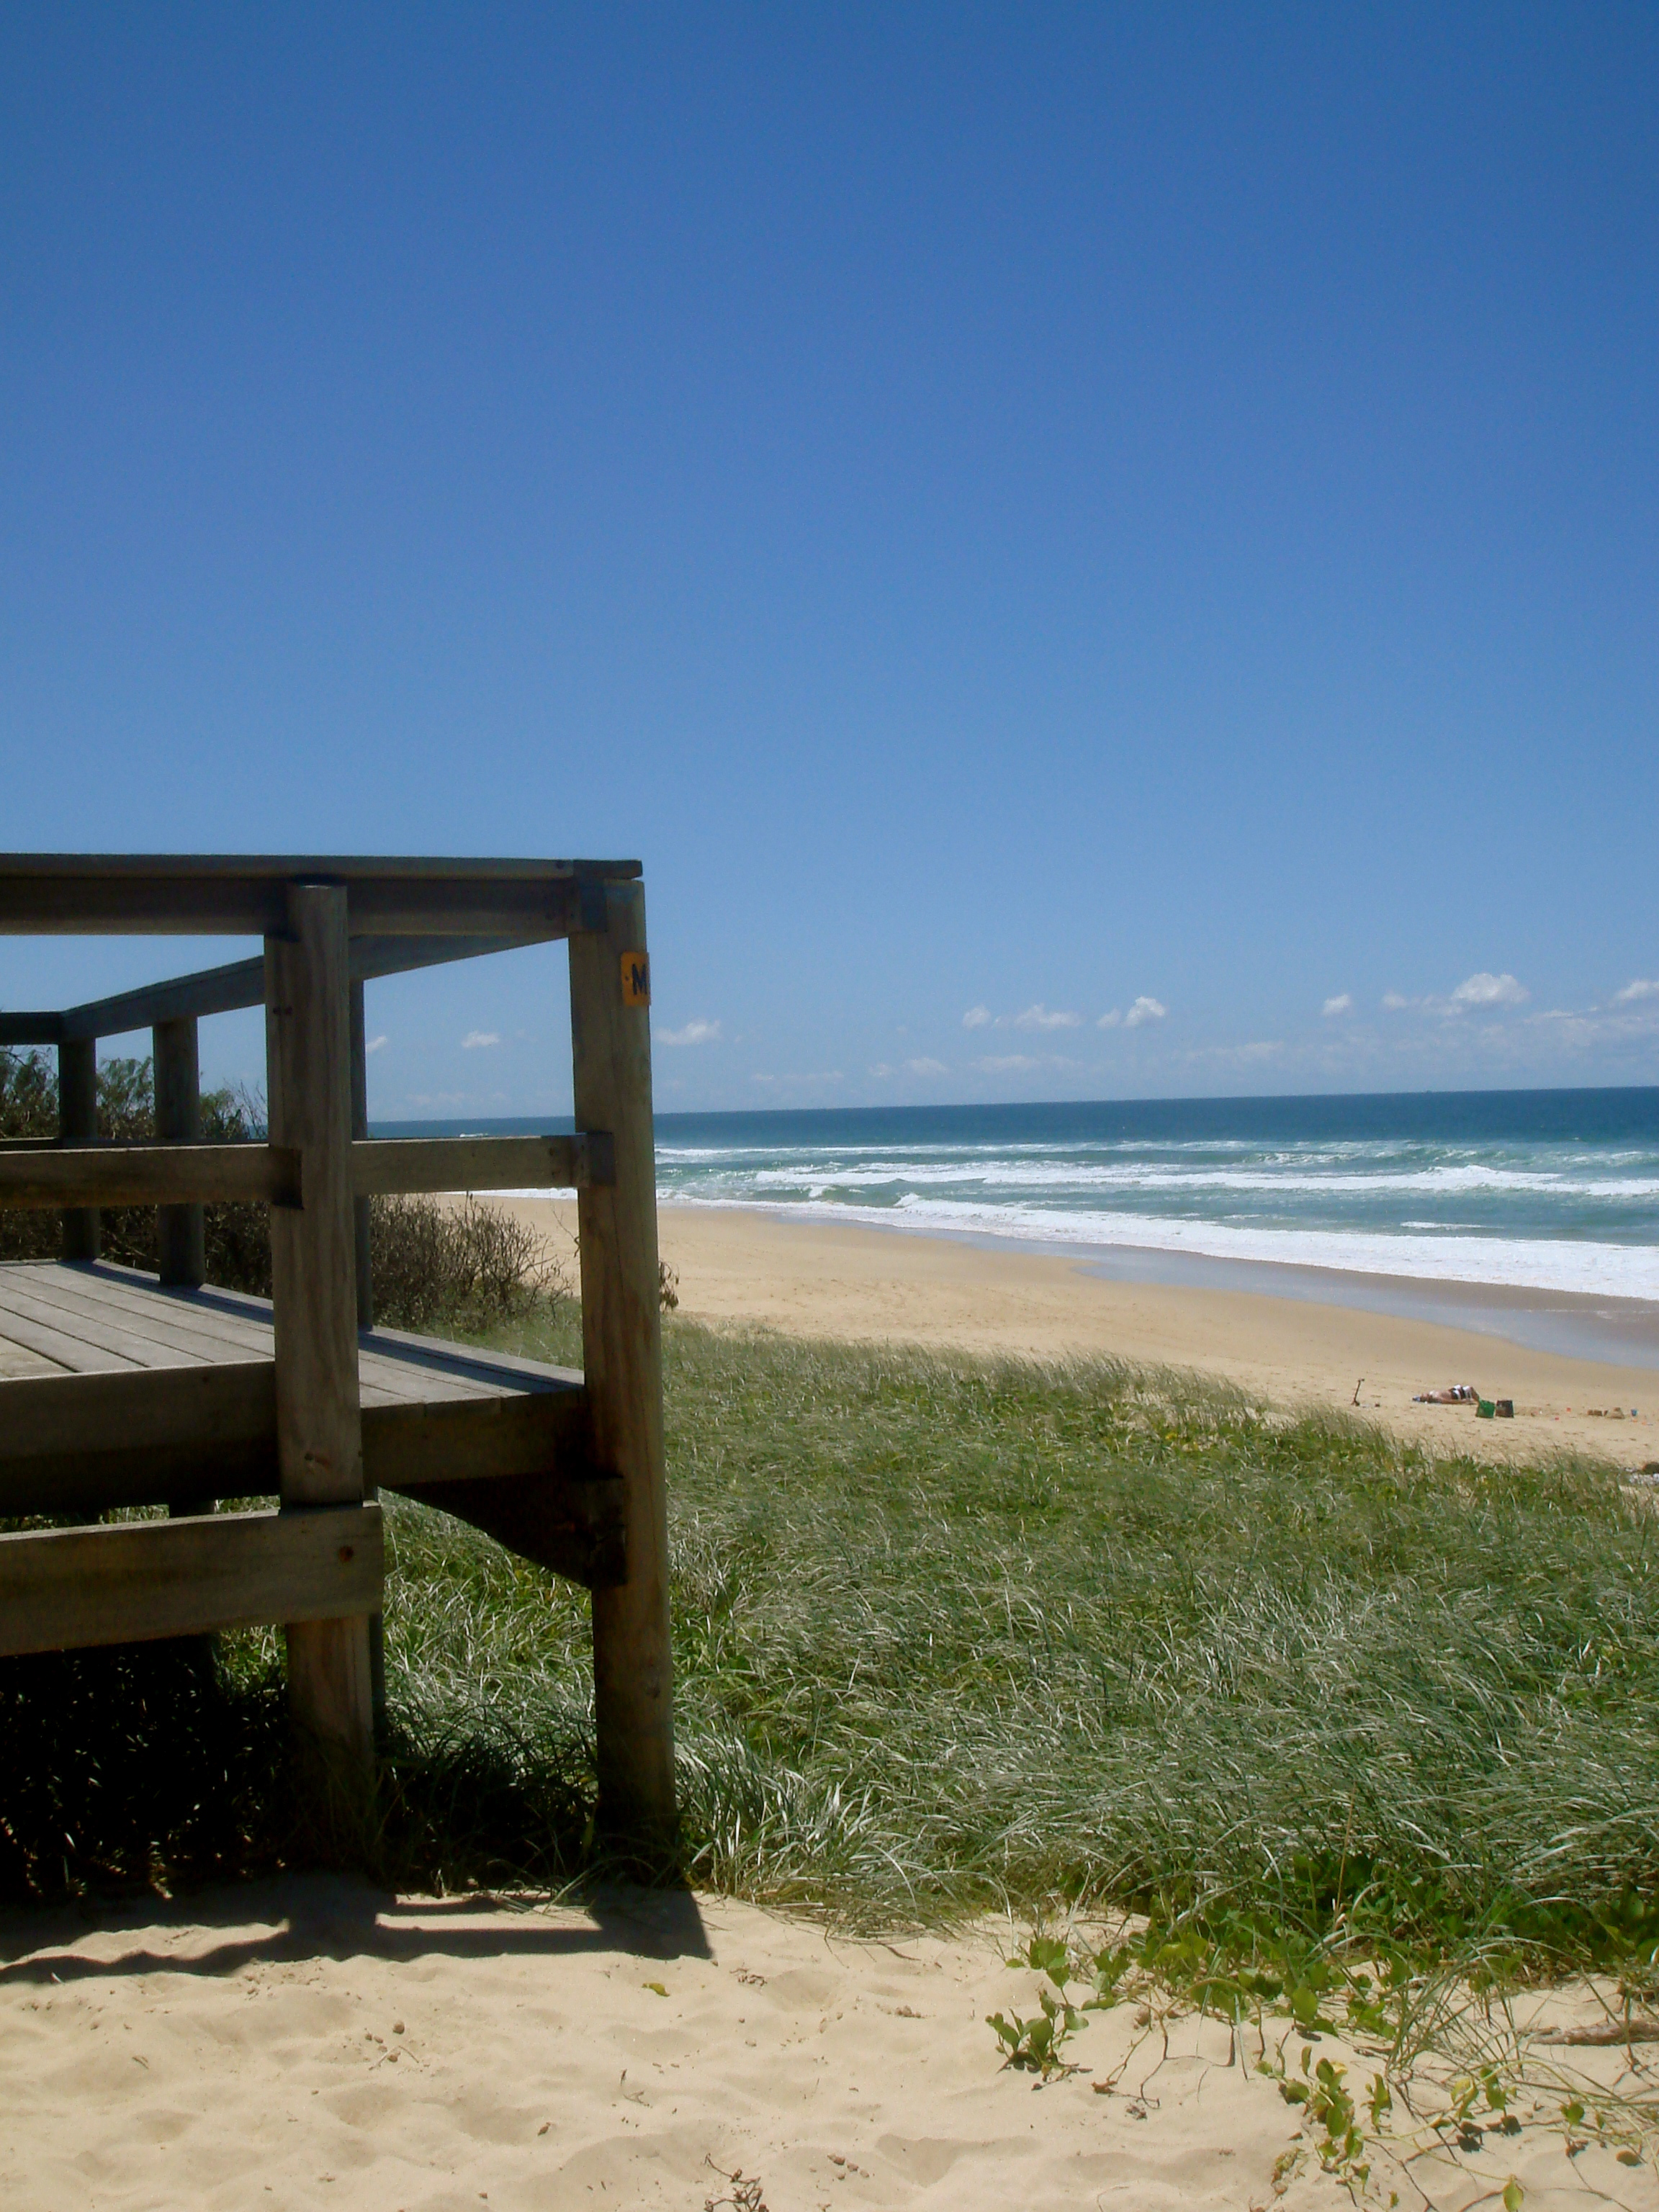 Mount Coolum Beach